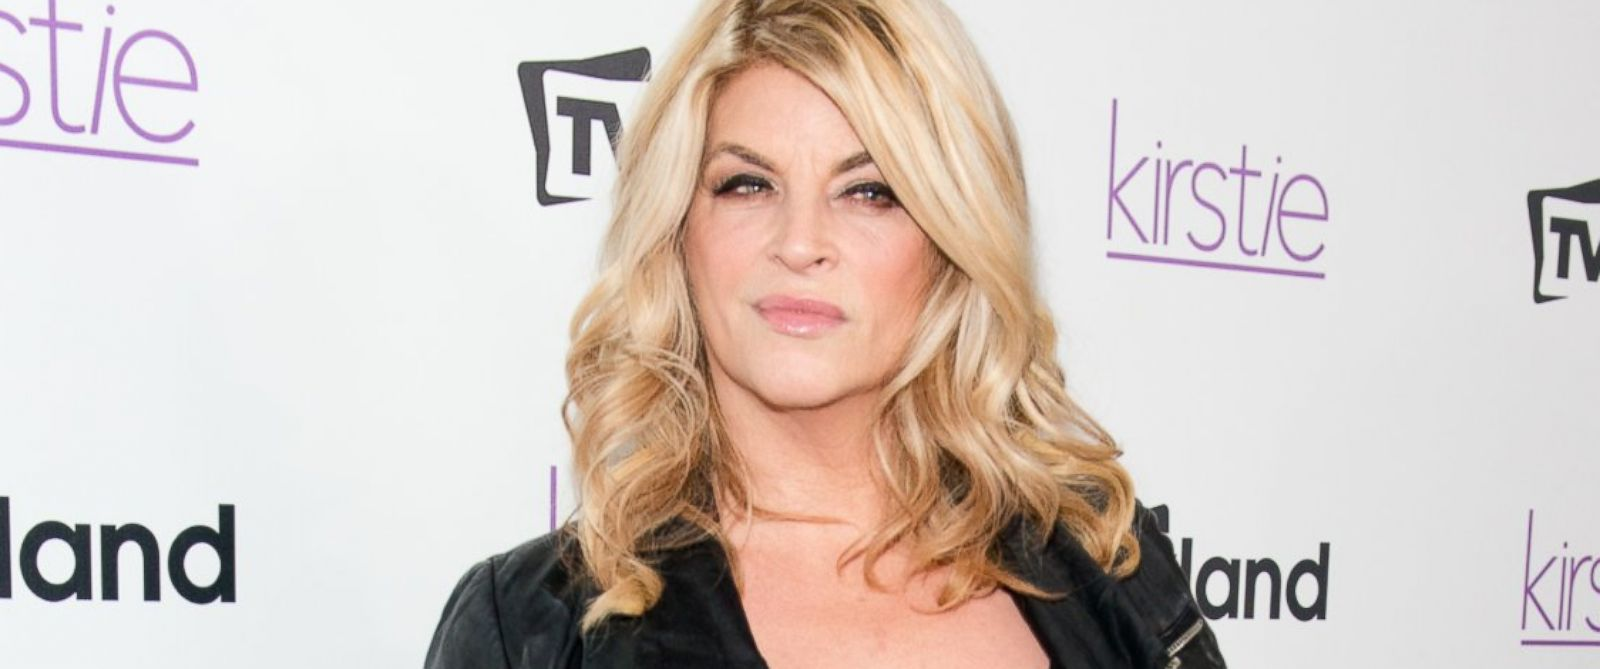 """PHOTO: Actress Kirstie Alley attends the """"Kirstie"""" series premiere party at Harlow, Dec. 3, 2013 in New York City."""